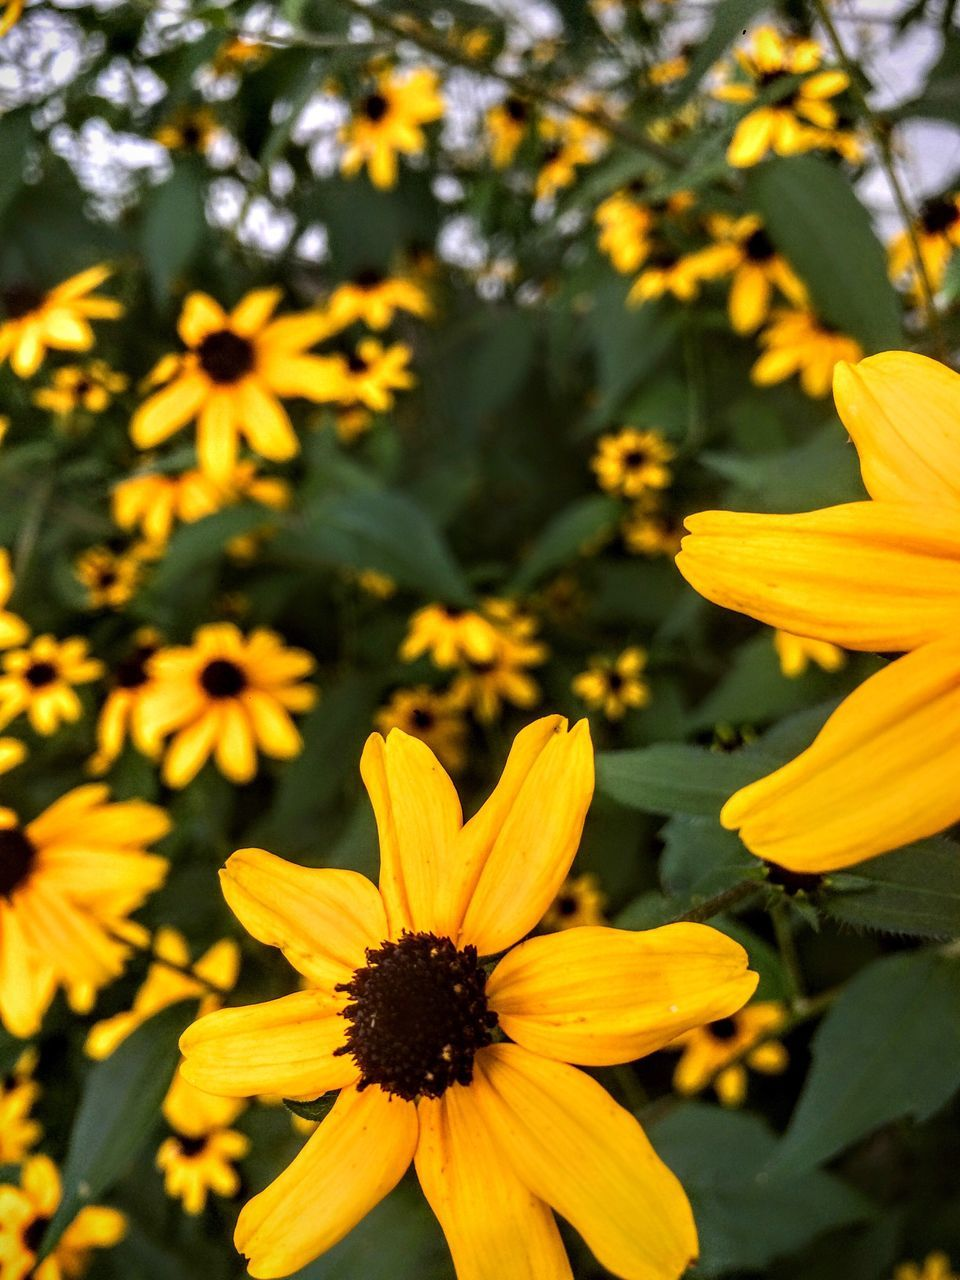 A sea of Black-Eyed Susans Flower Yellow Beauty In Nature Focus On Foreground Blossom Full Frame Botany In Bloom Flora Plant Inmygarden